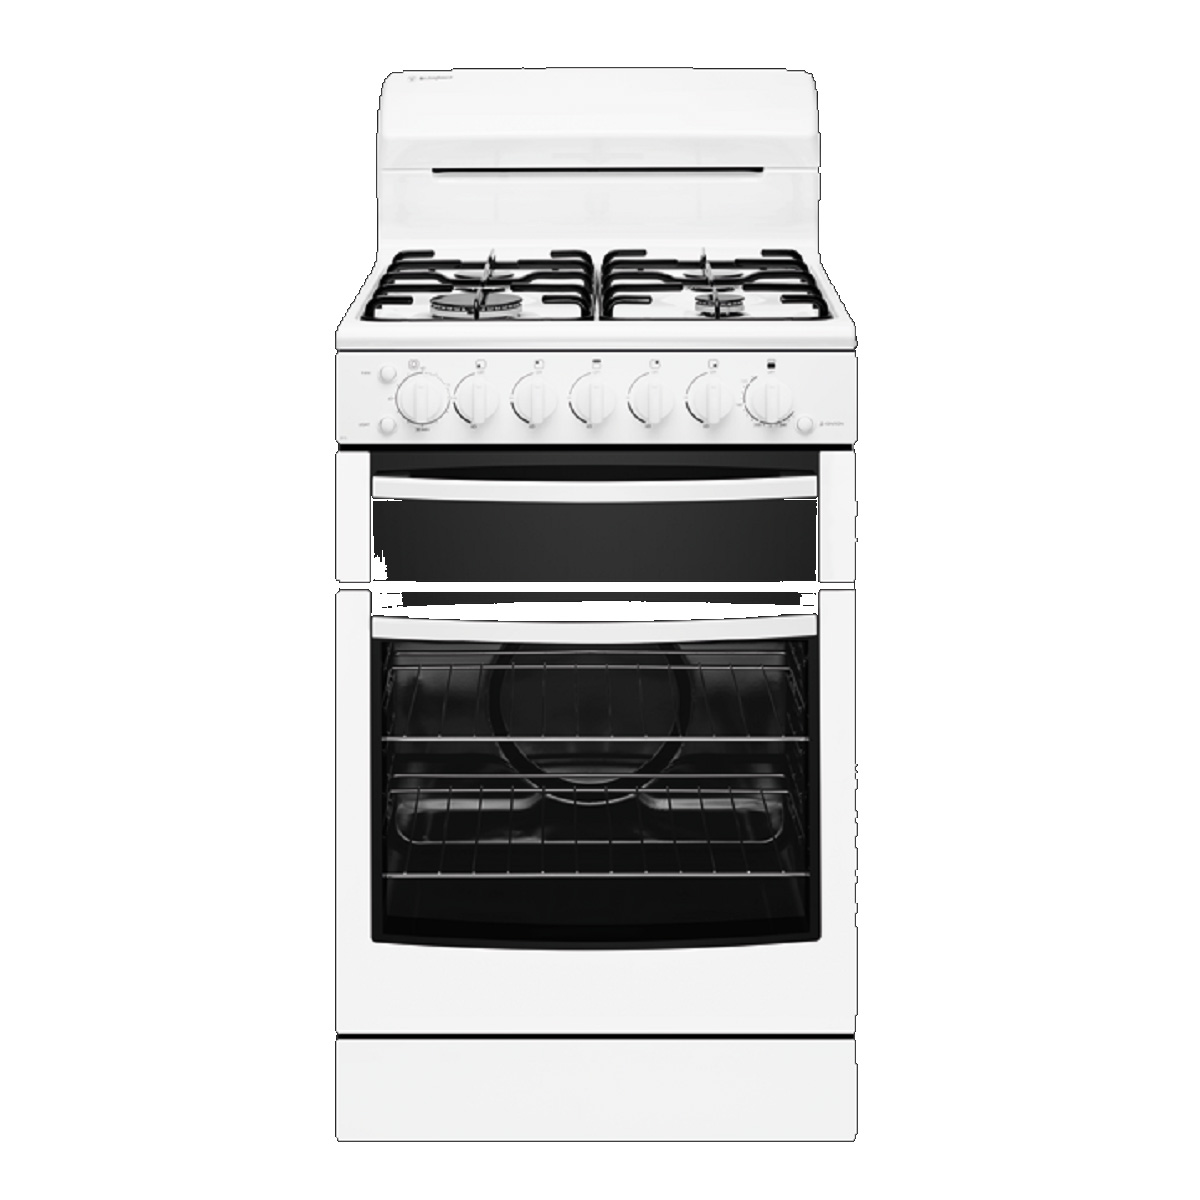 Westinghouse WLG503WA Freestanding Gas Oven/Stove